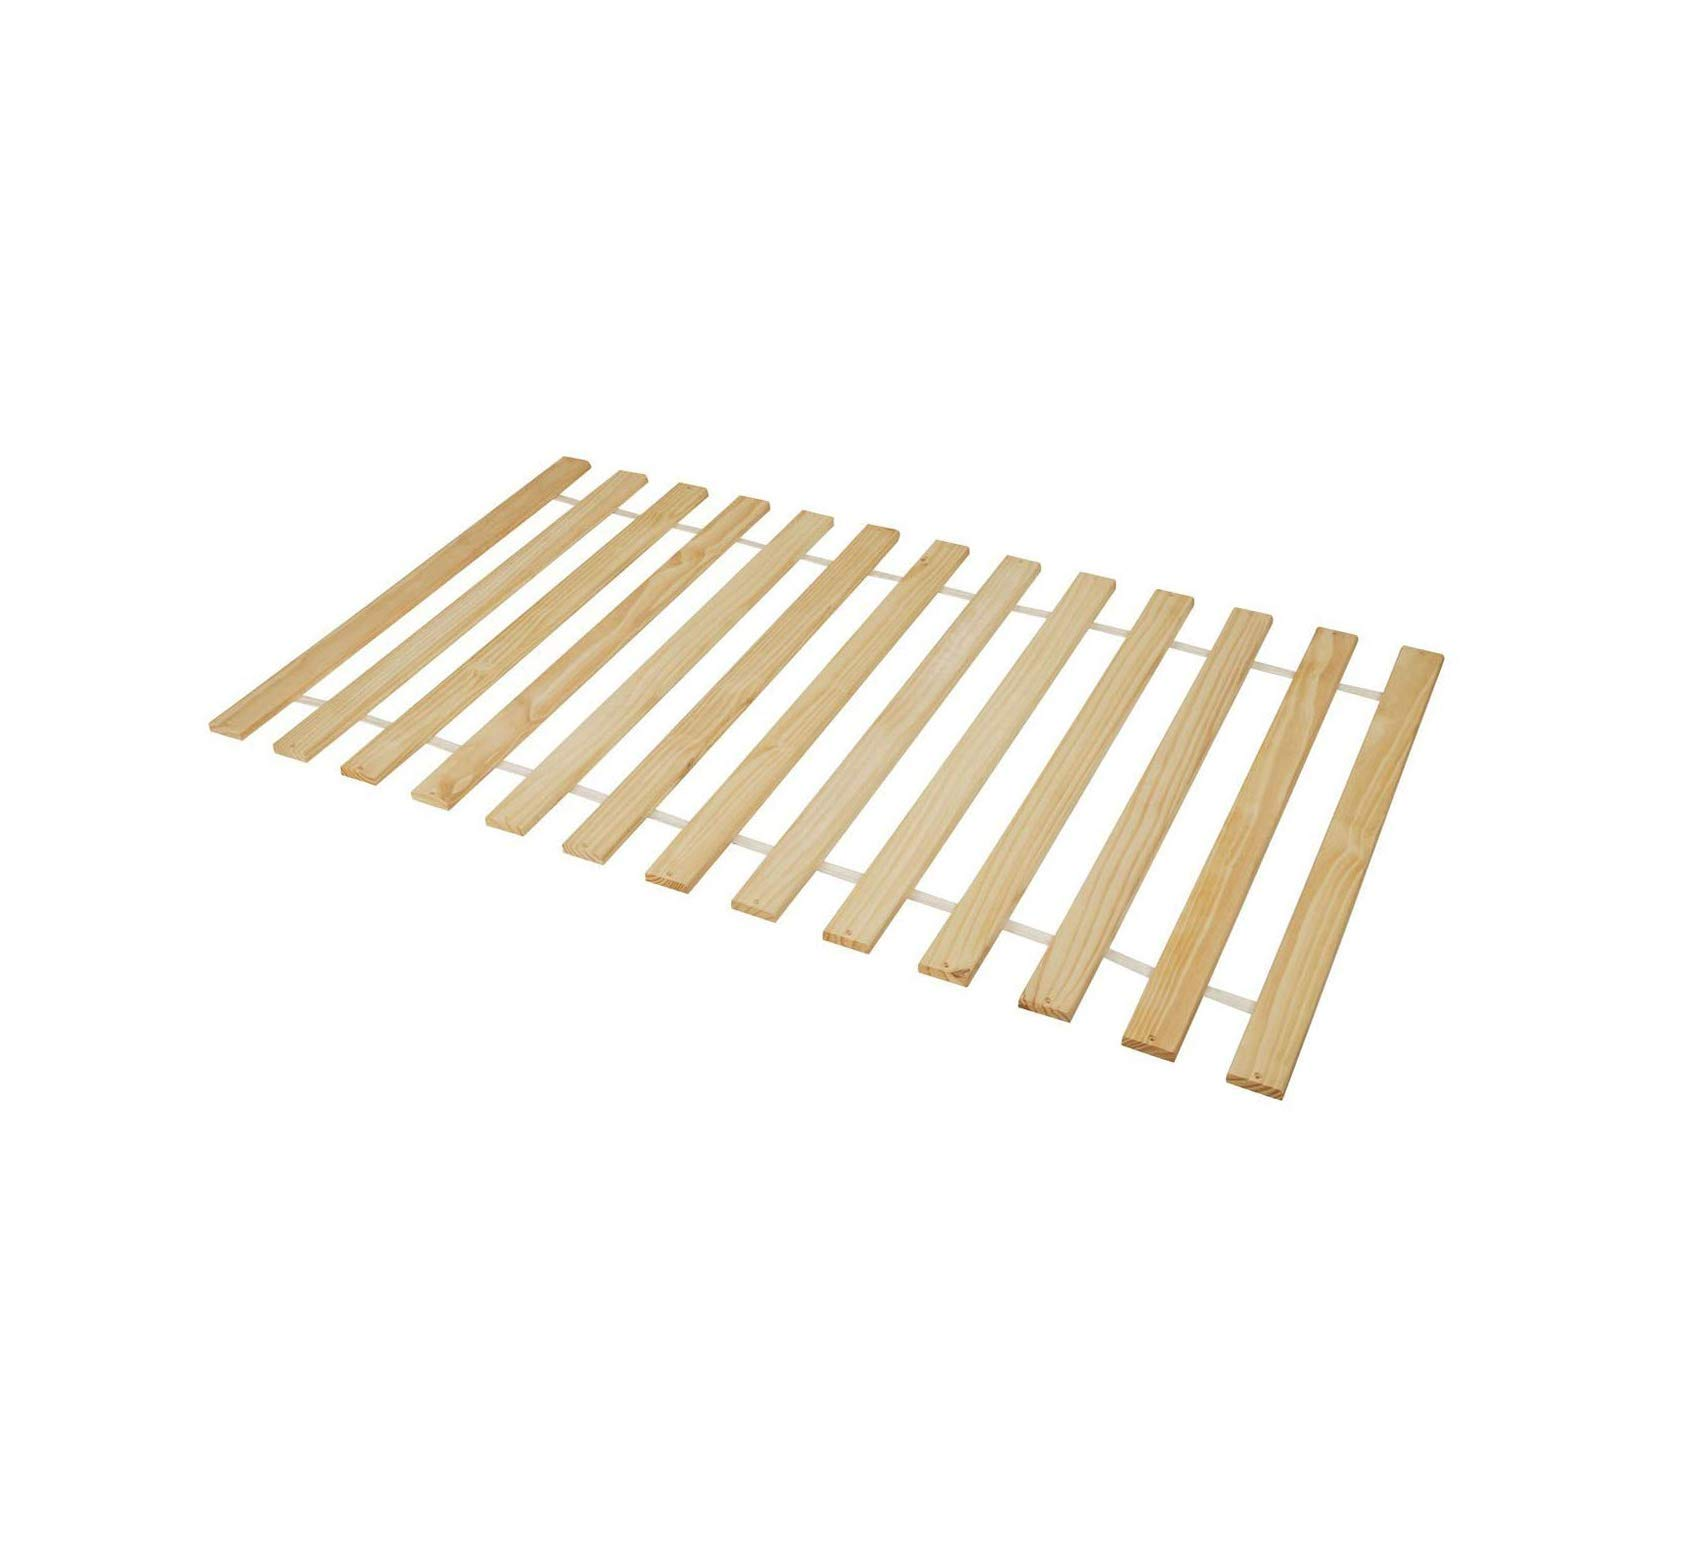 Wood & Style Slat Pack, Full, Unfinished Comfy Living Home Décor Furniture Heavy Duty by Wood & Style